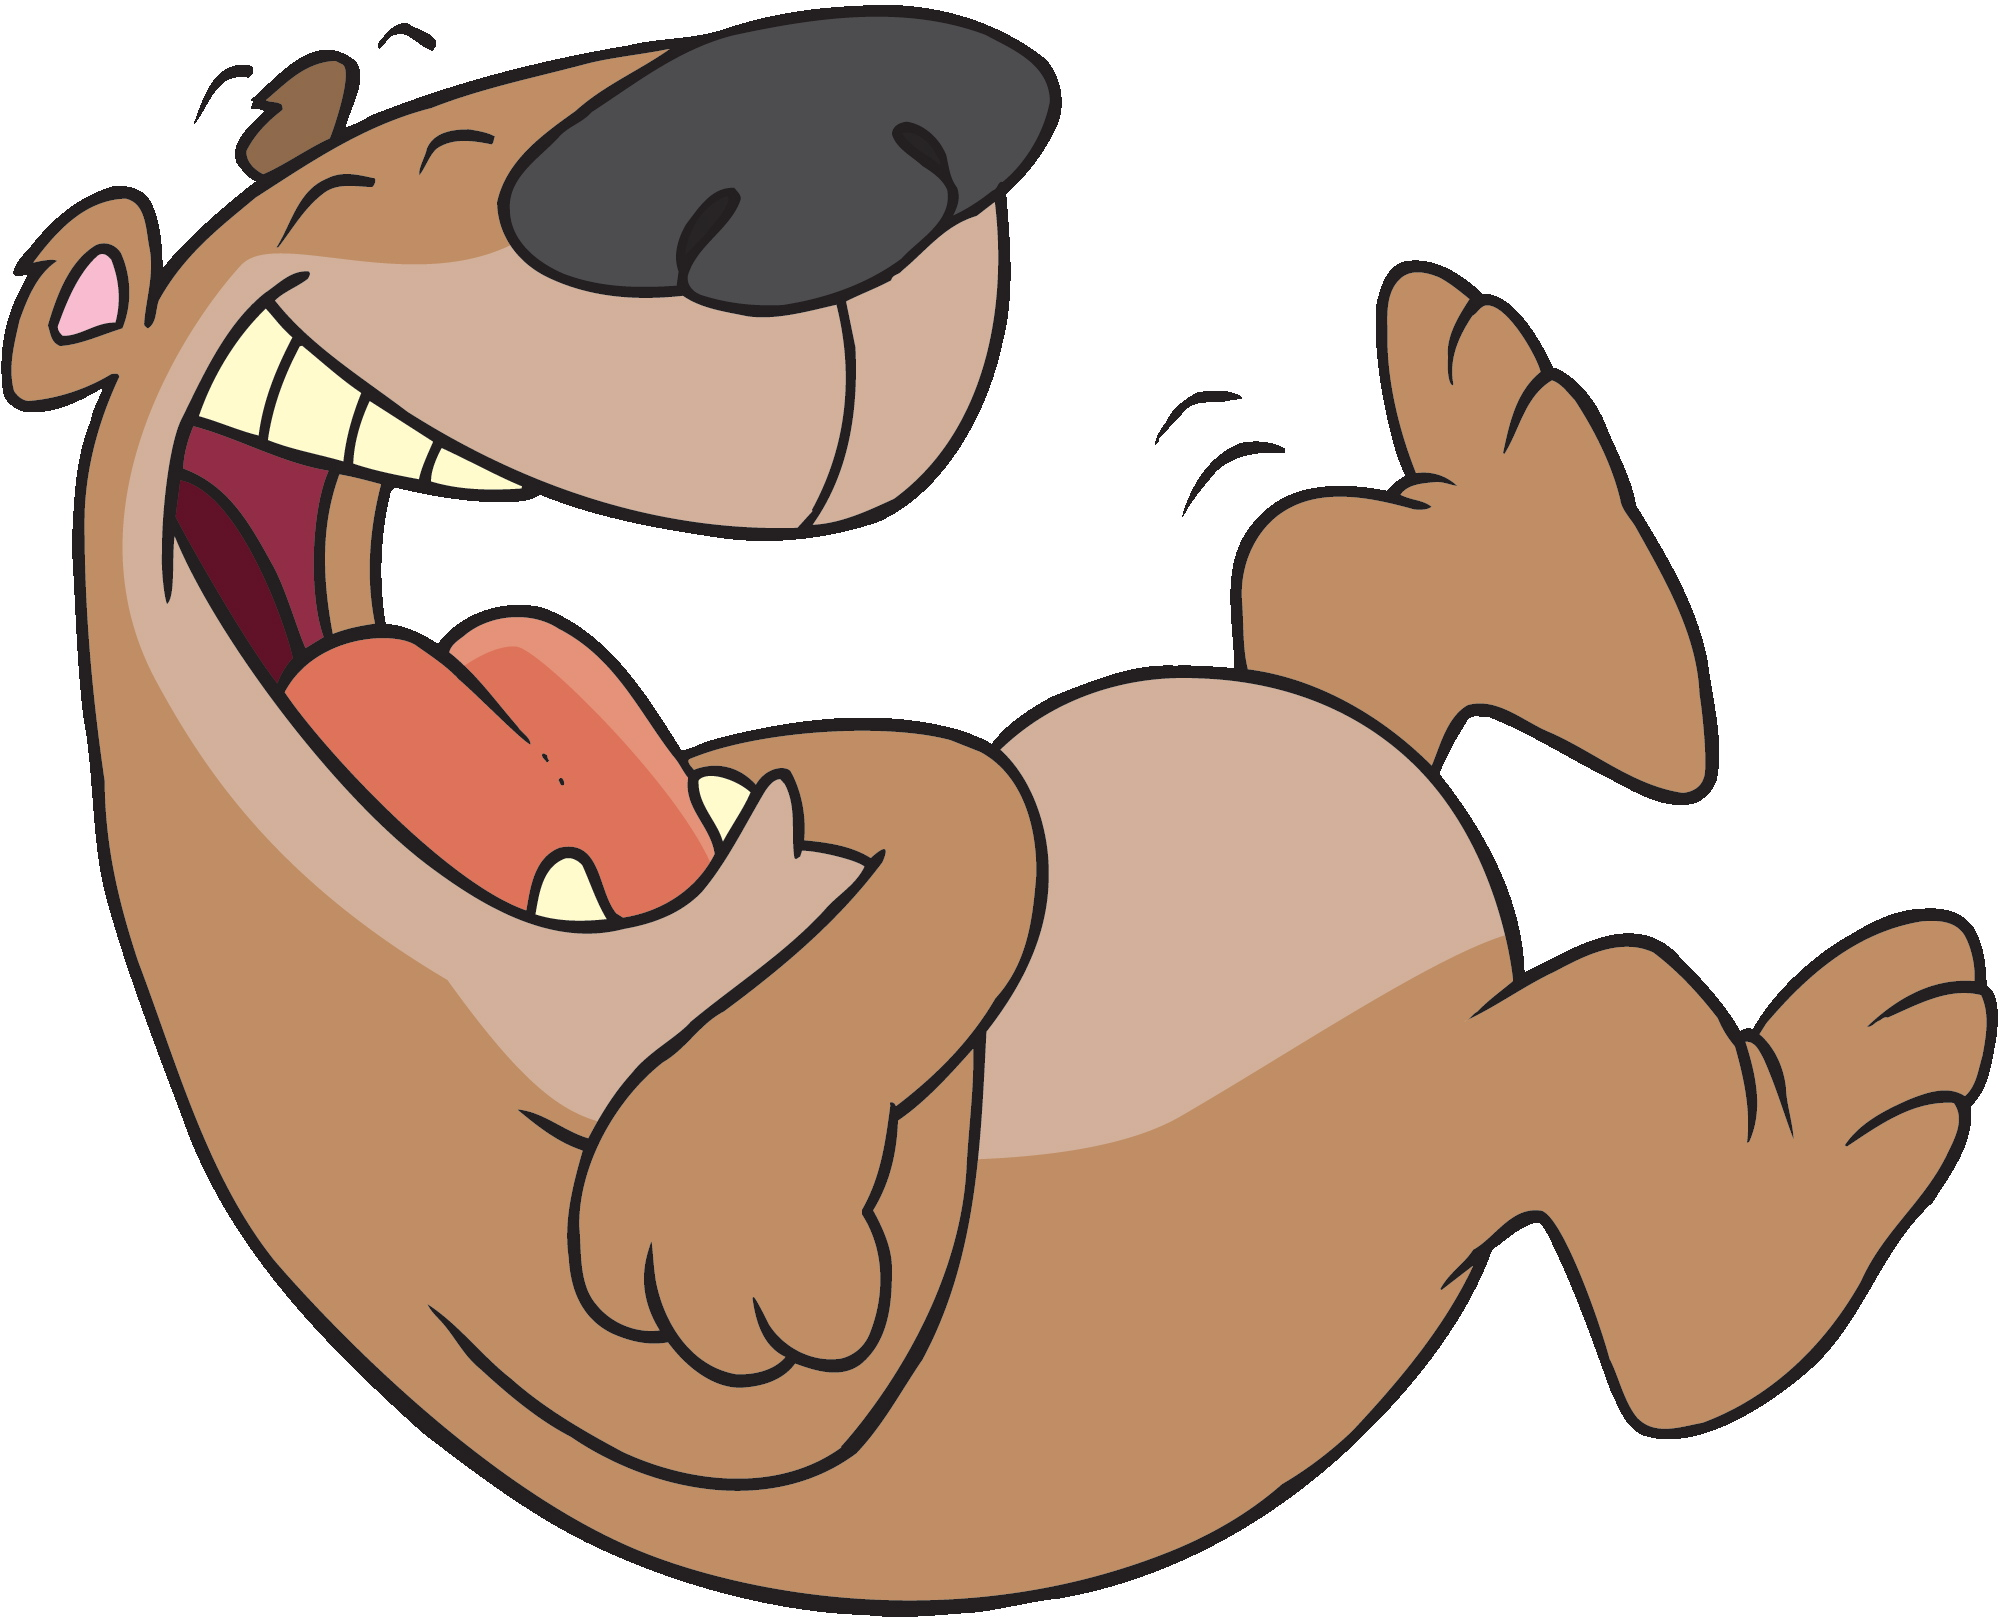 Free Laughing Cartoon, Download Free Clip Art, Free Clip ...